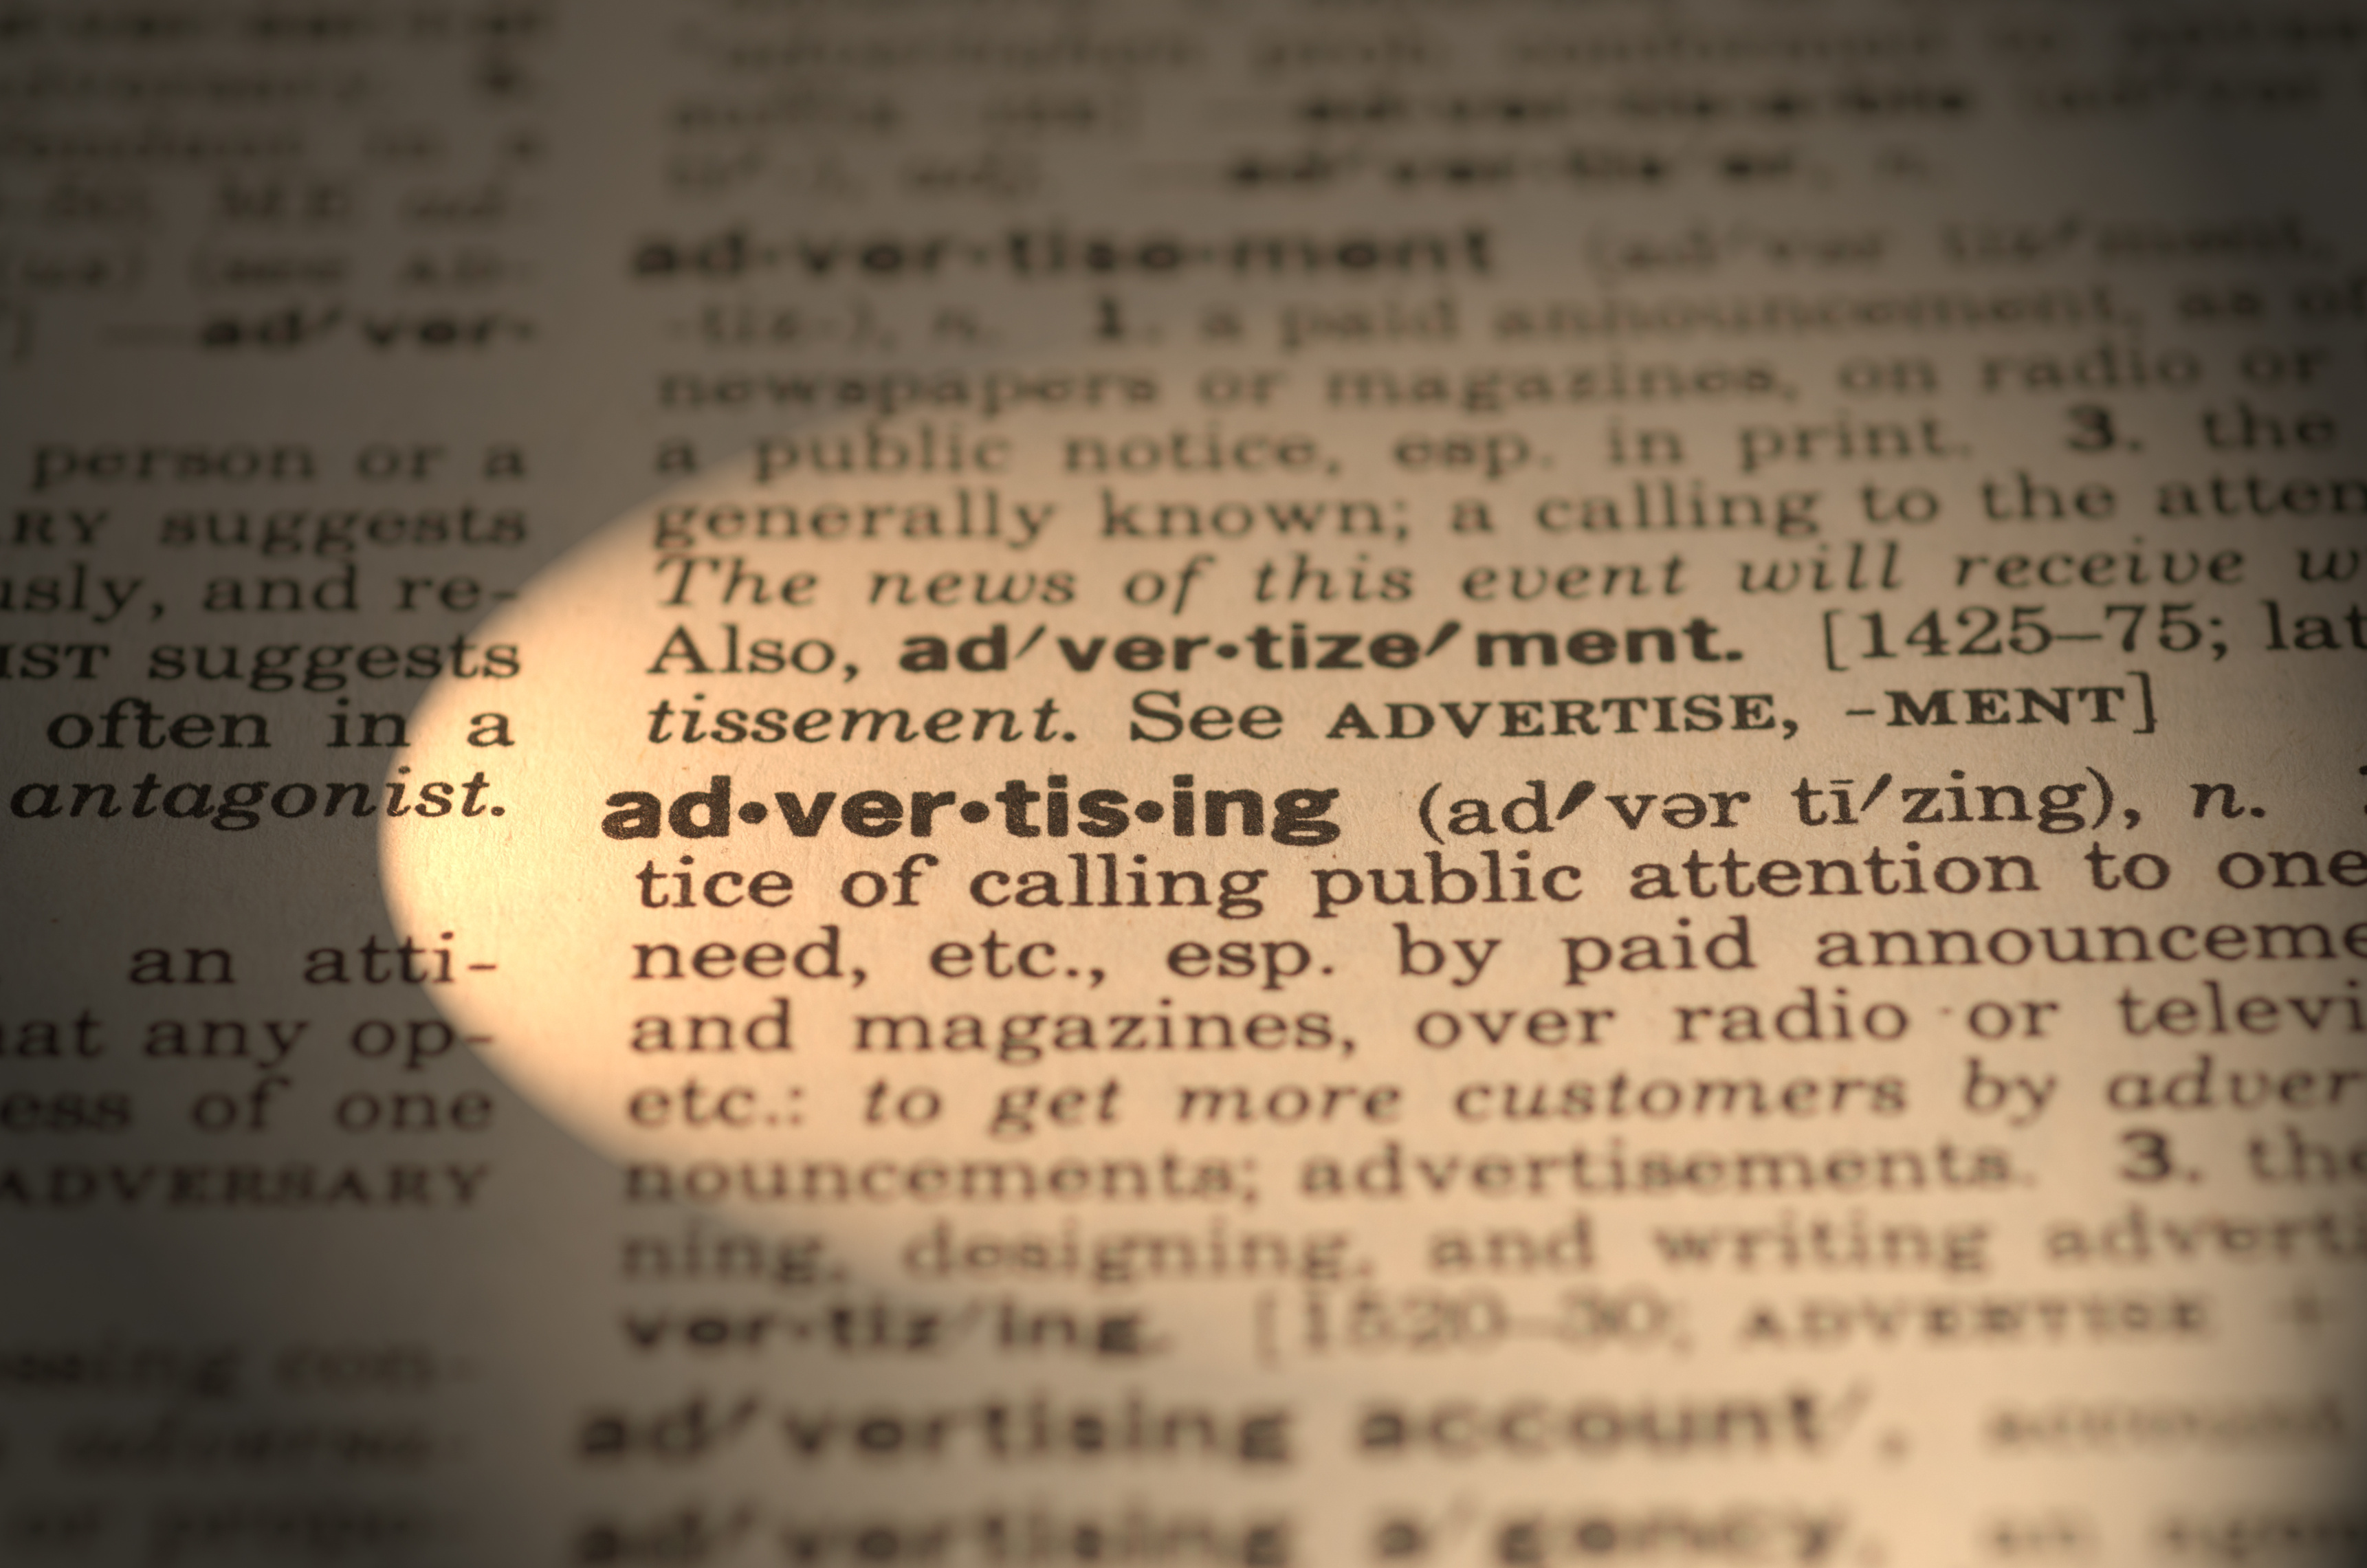 Dictionary definition (advertising)